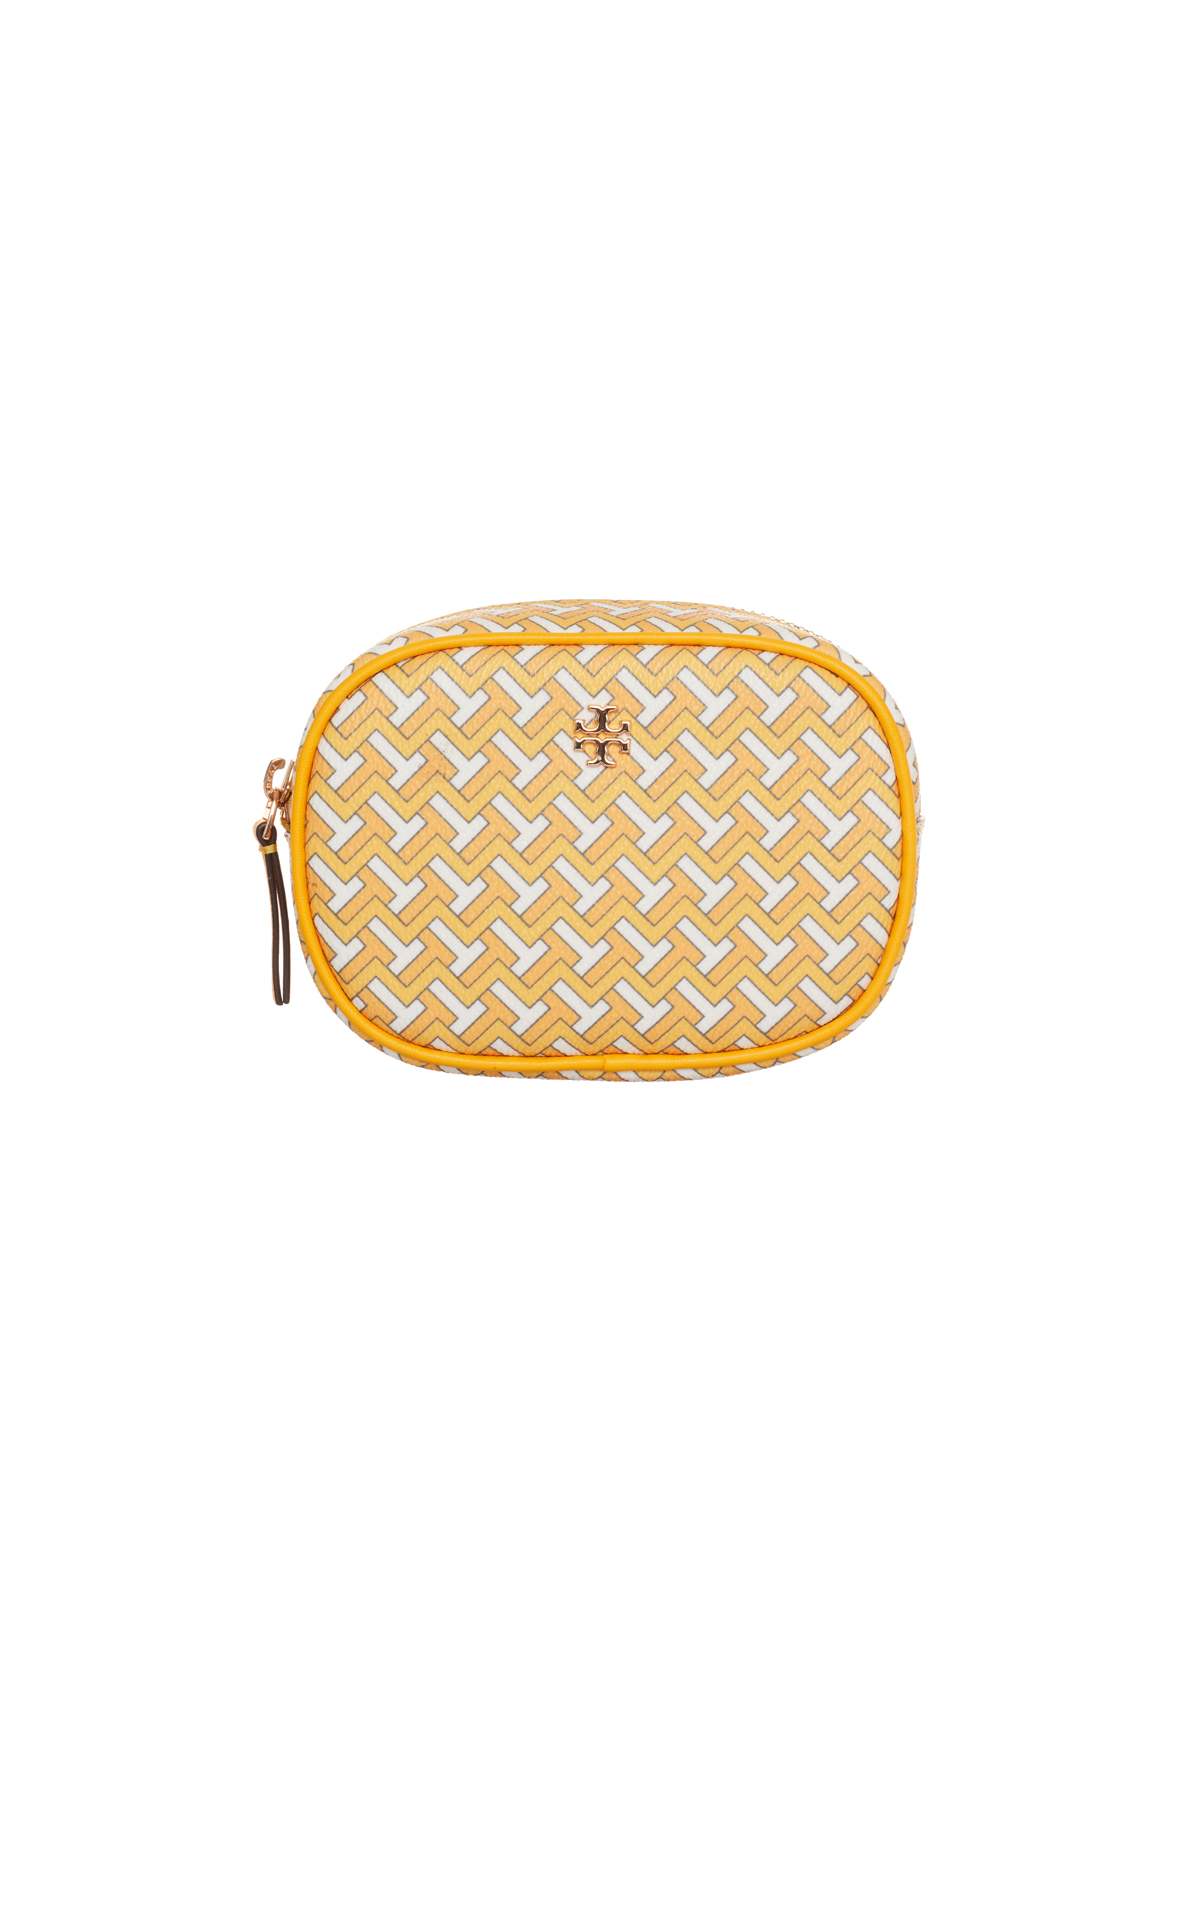 Tory Burch T zag cosmetic case from Bicester Village